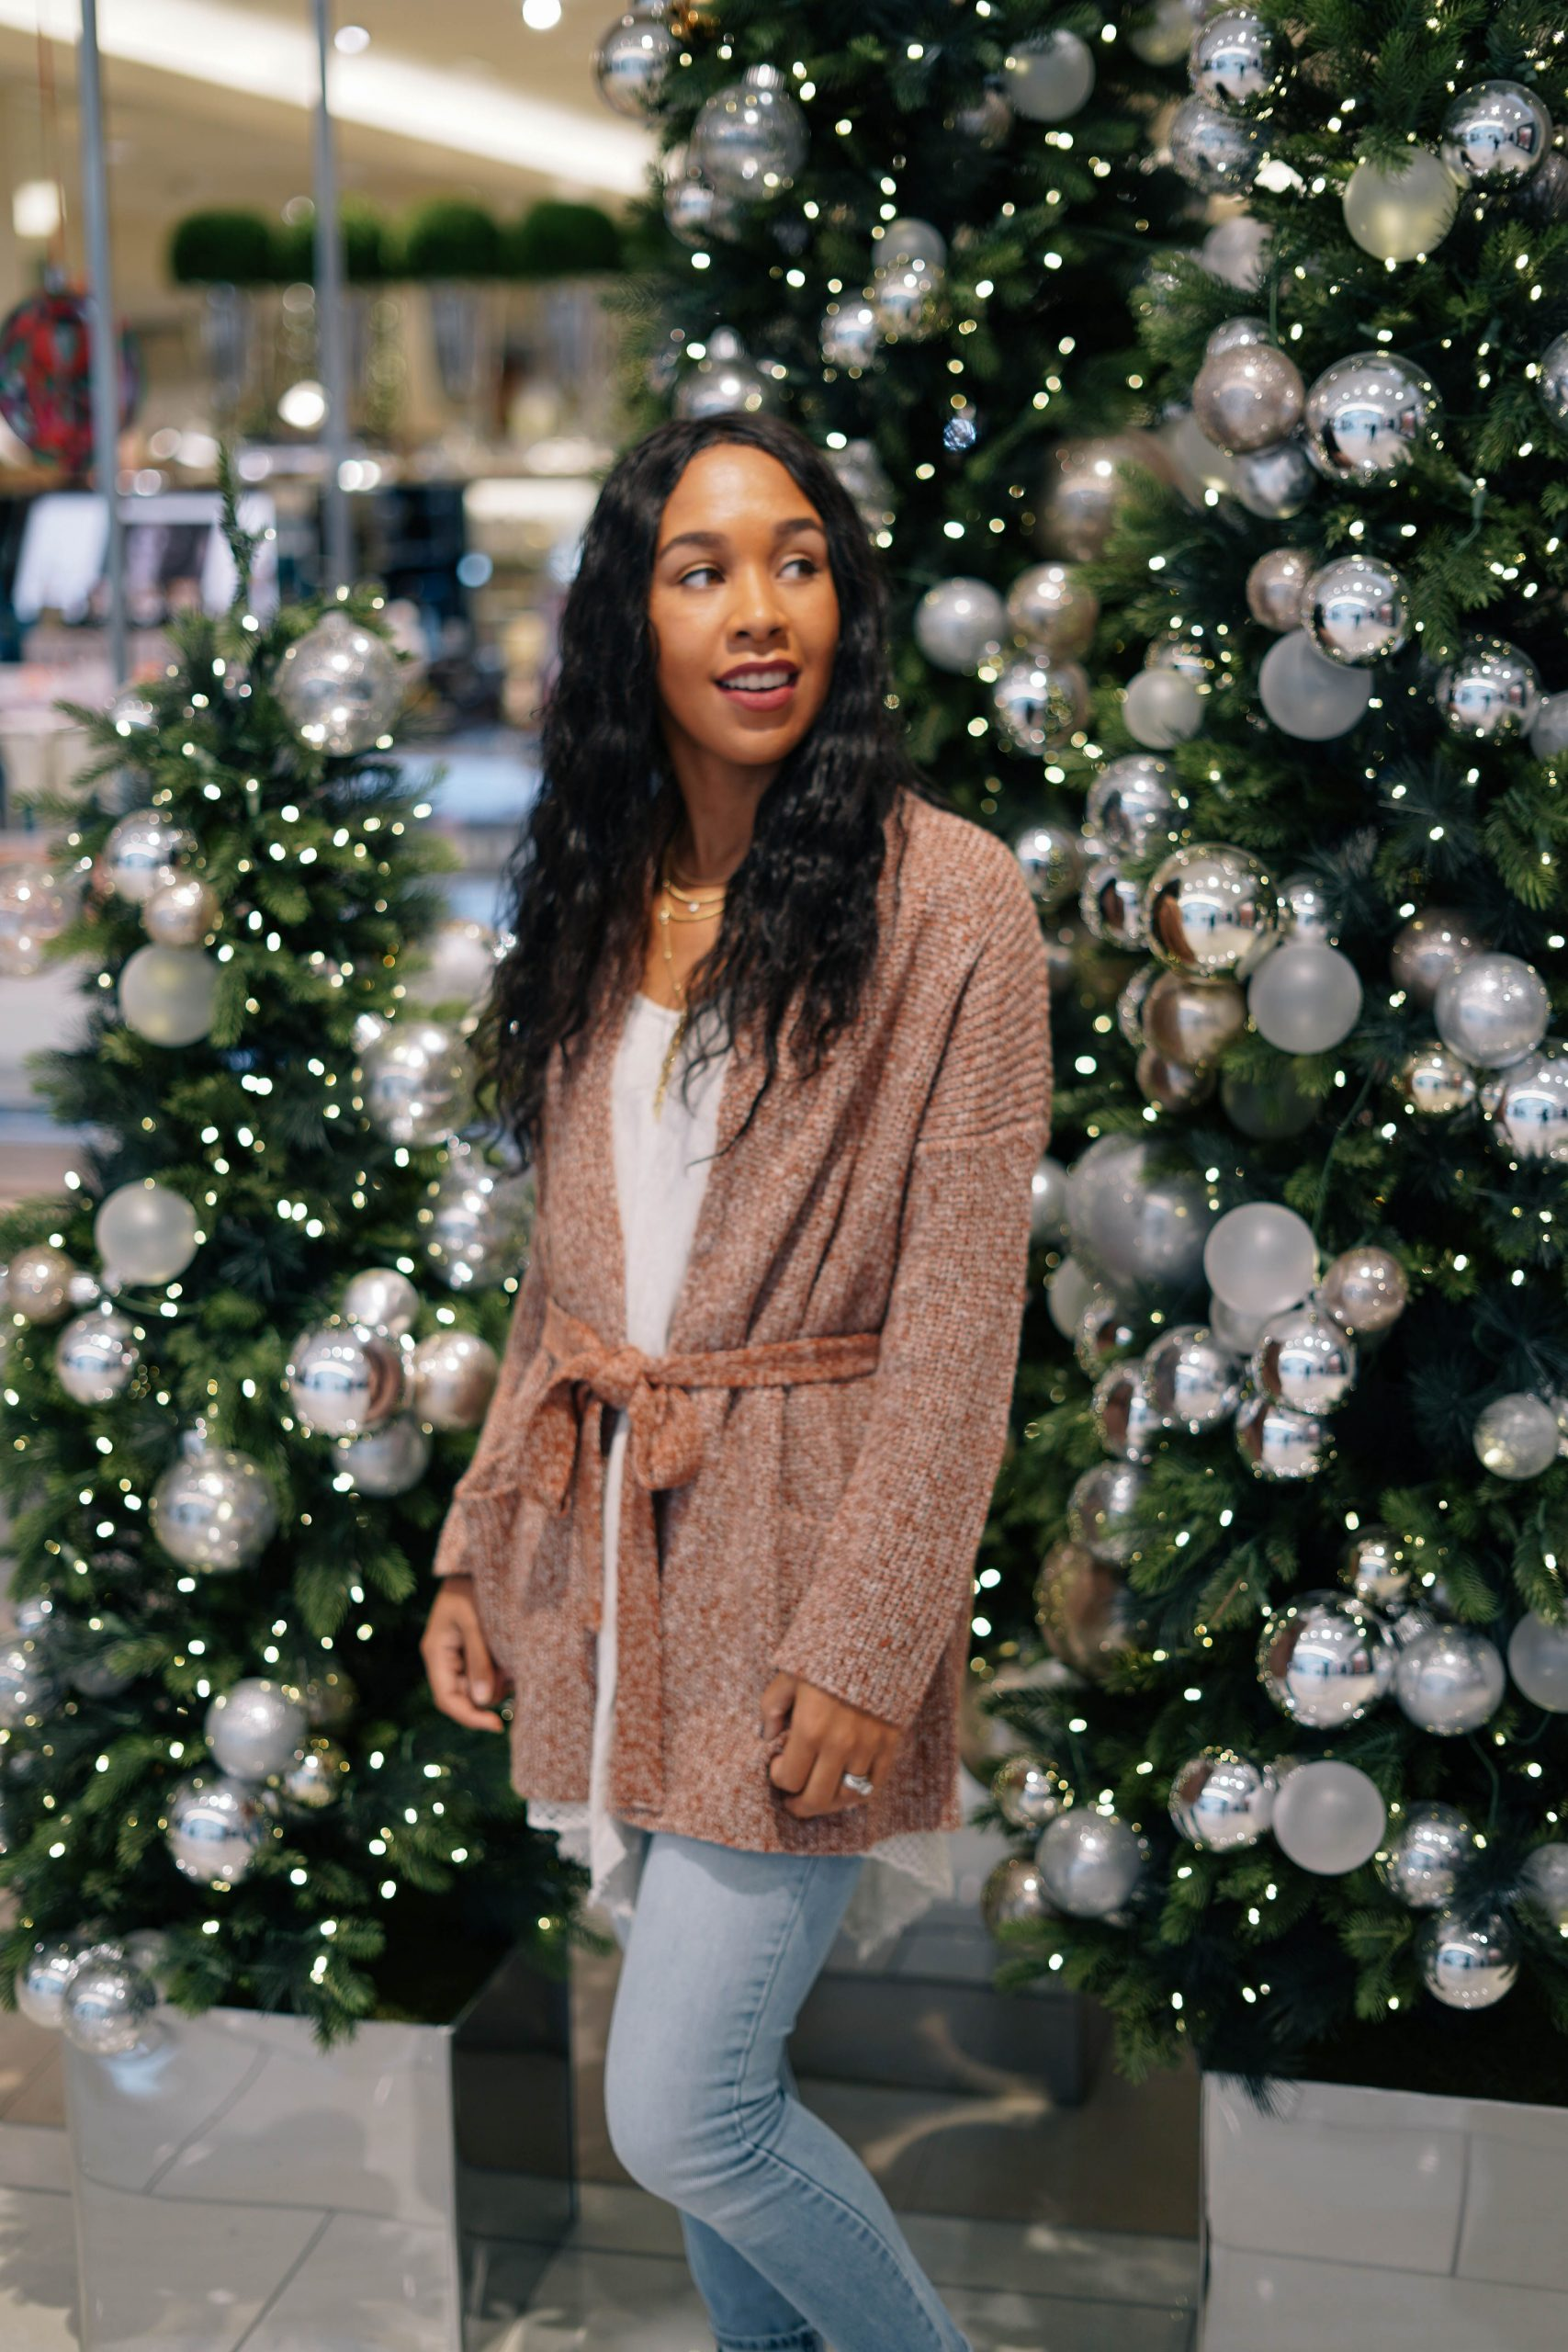 A Casual Holiday Look Giveaway Holiday Style 2018 LivingLesh scaled